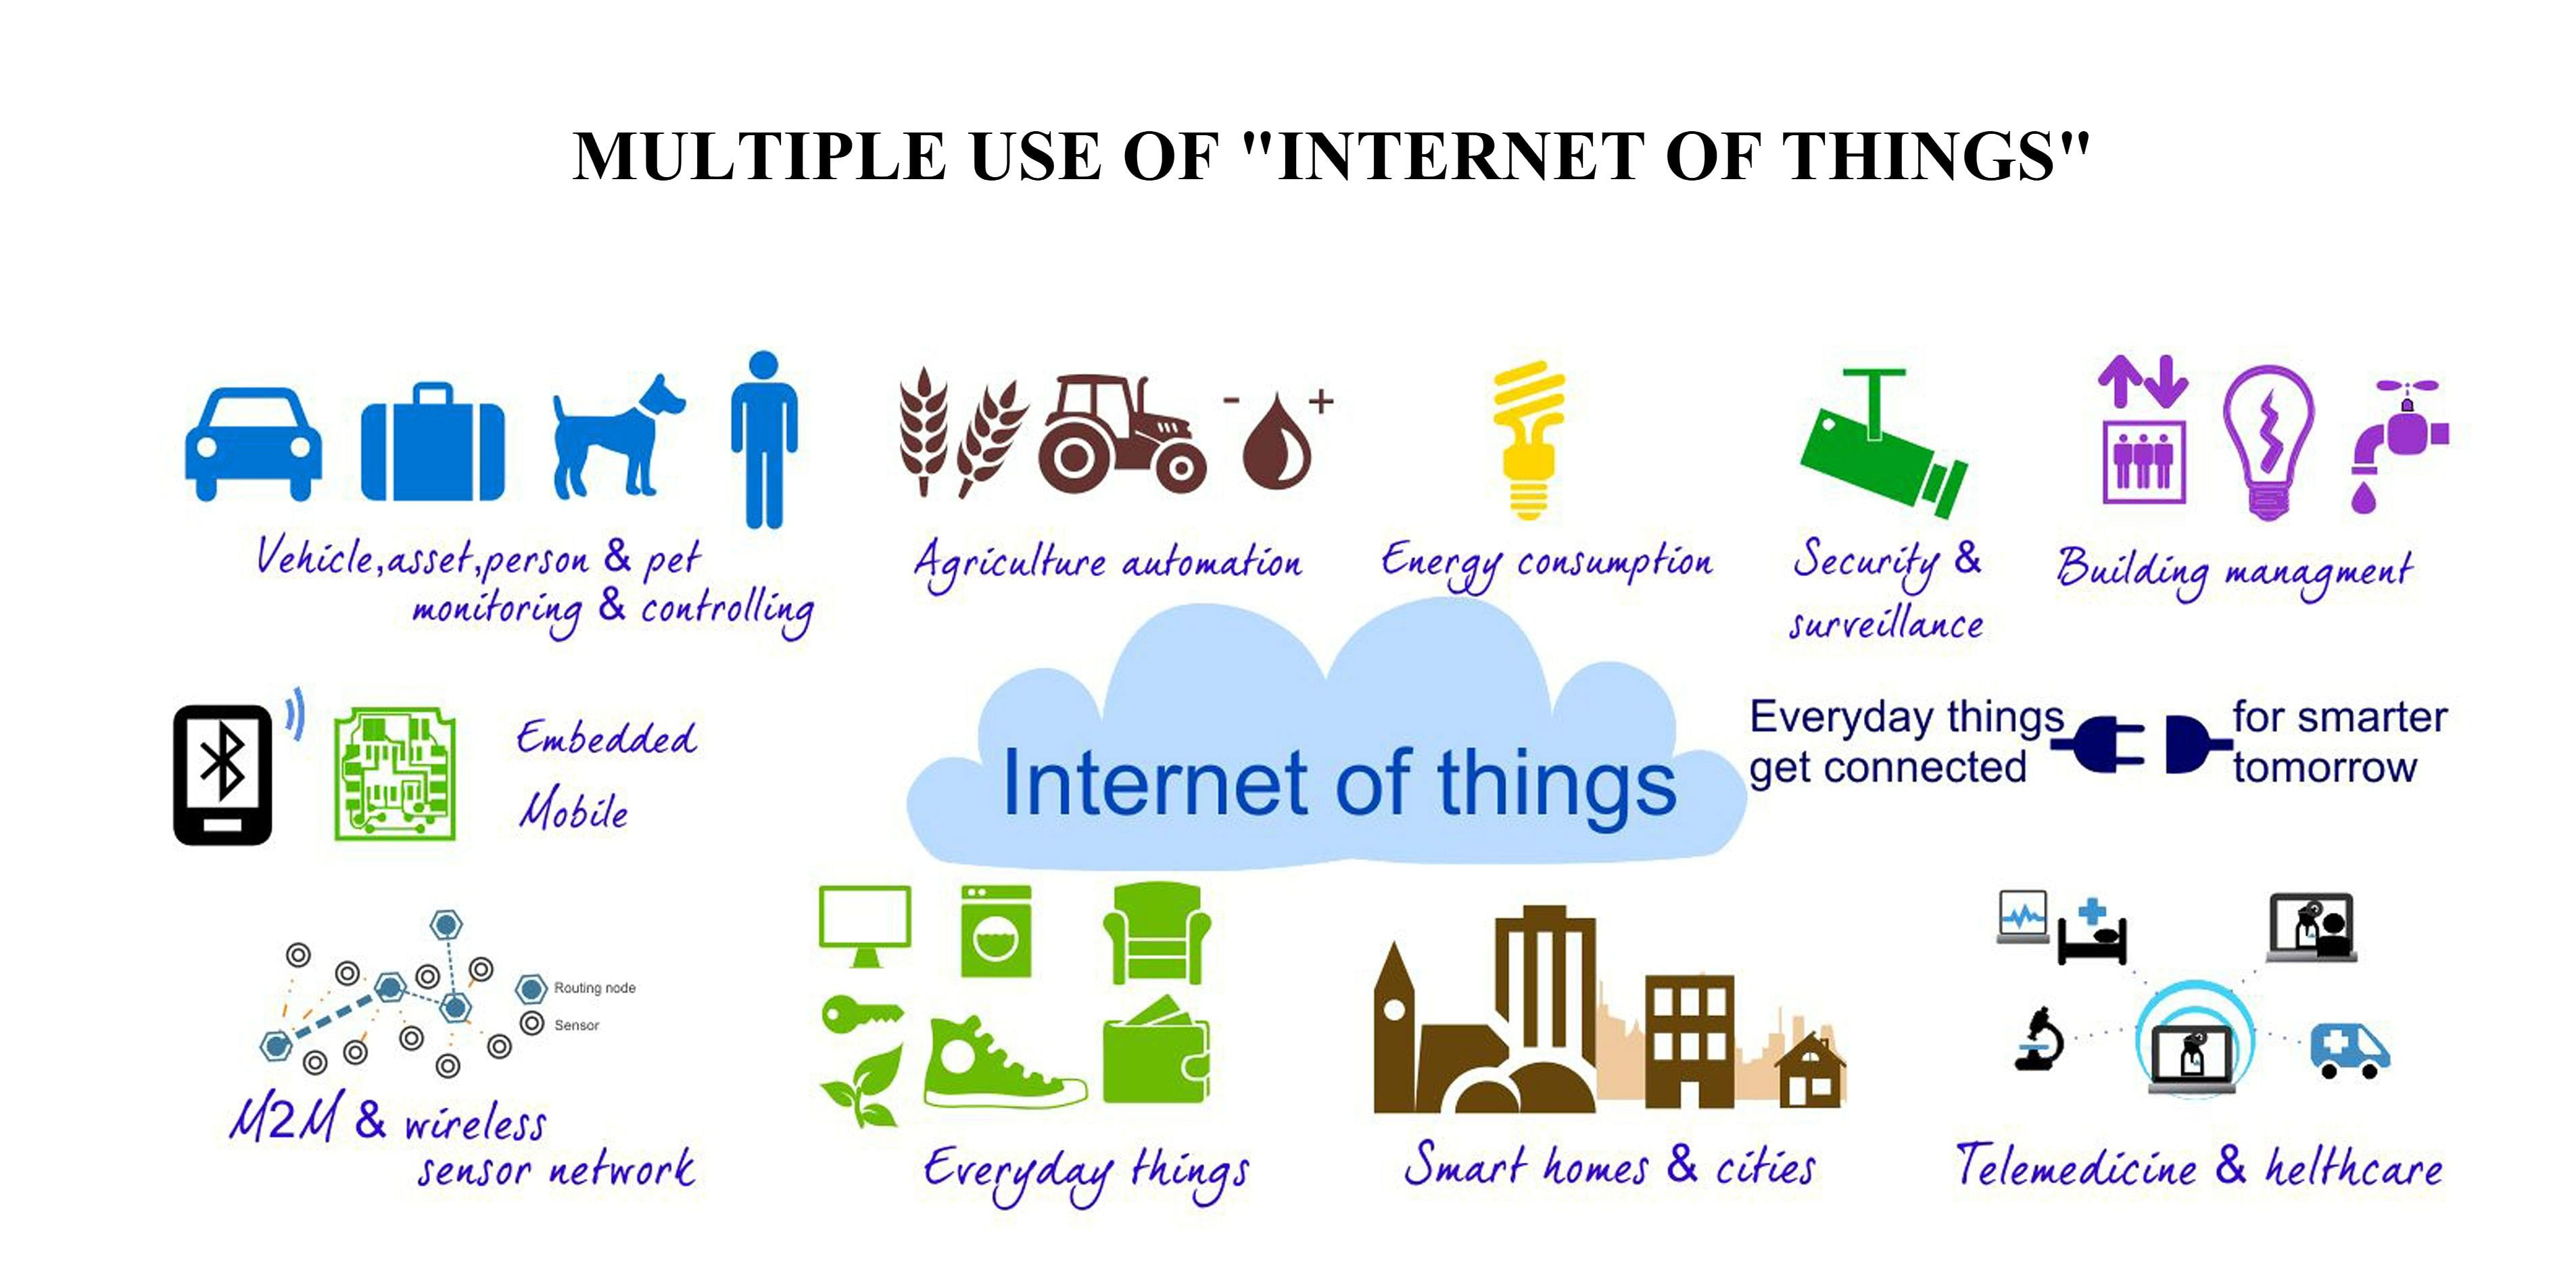 Photo Credit: https://thepowerofus.org/2016/08/09/the-internet-of-things/